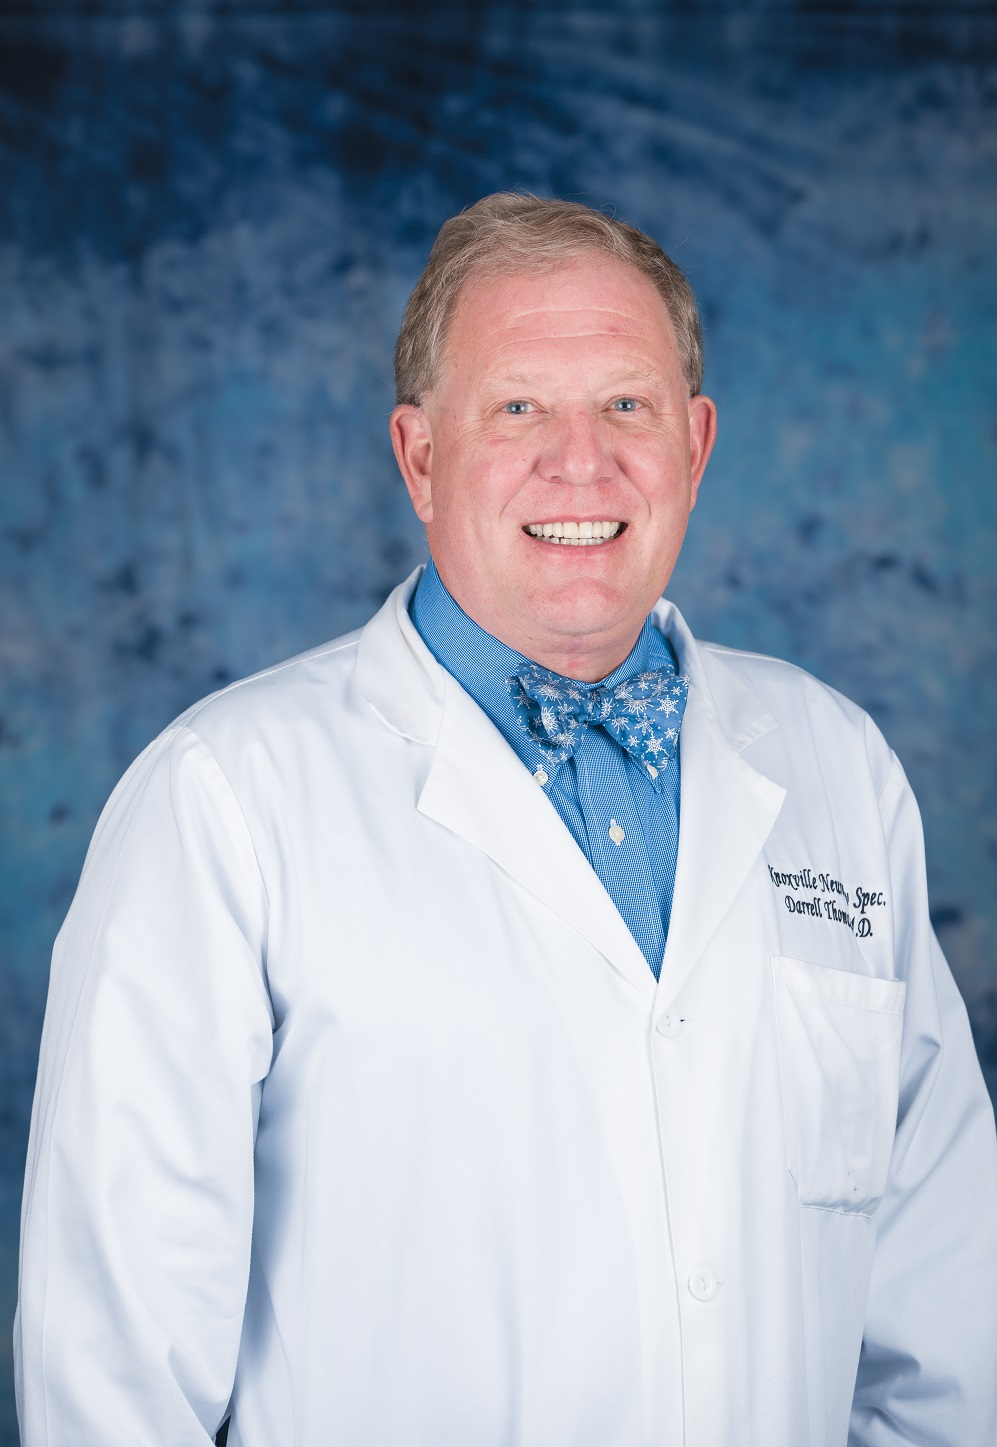 Darrell Thomas, MD of Knoxville Neurology Specialists